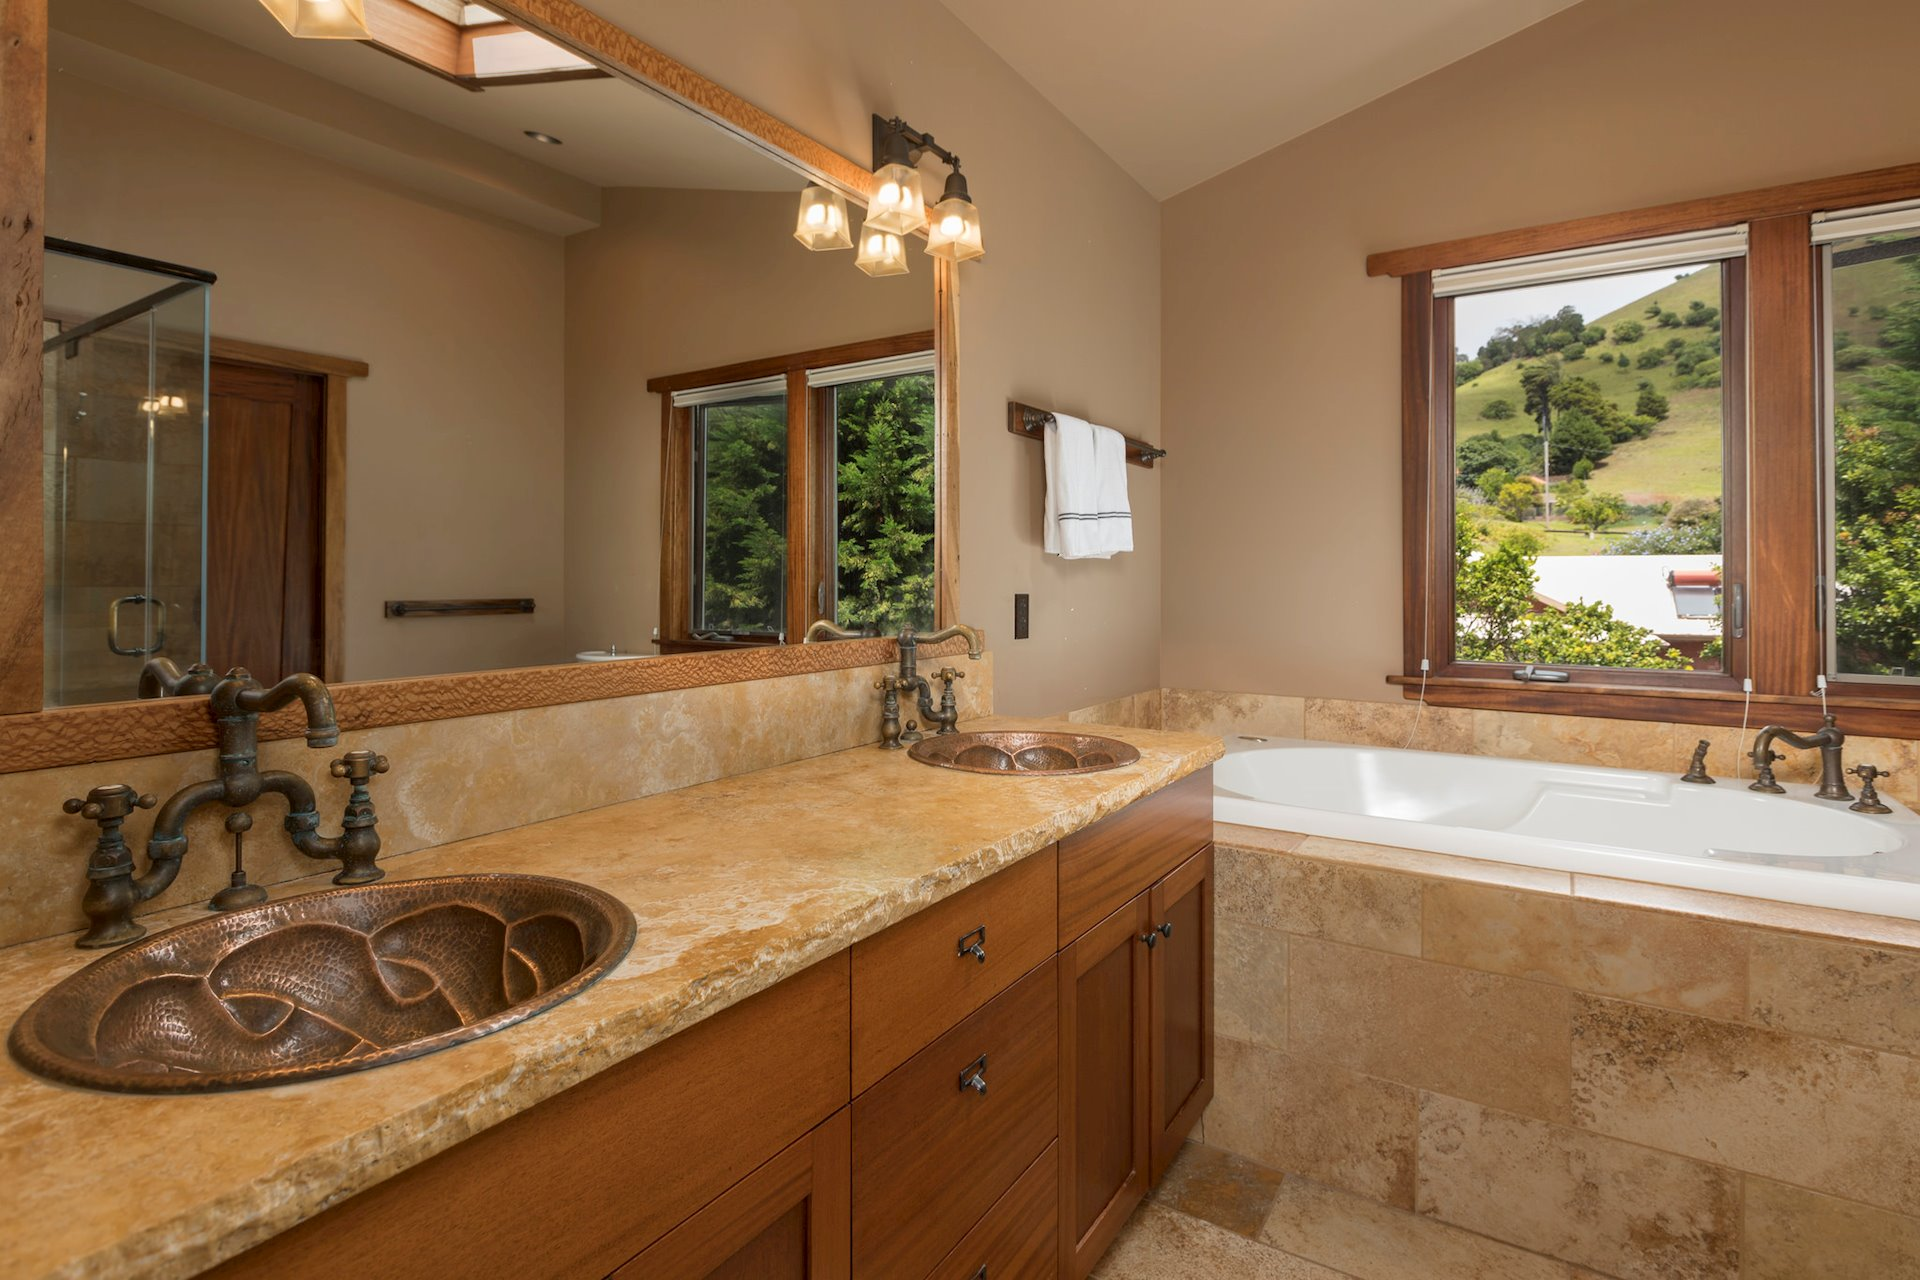 Master bath with double hammered copper sinks.